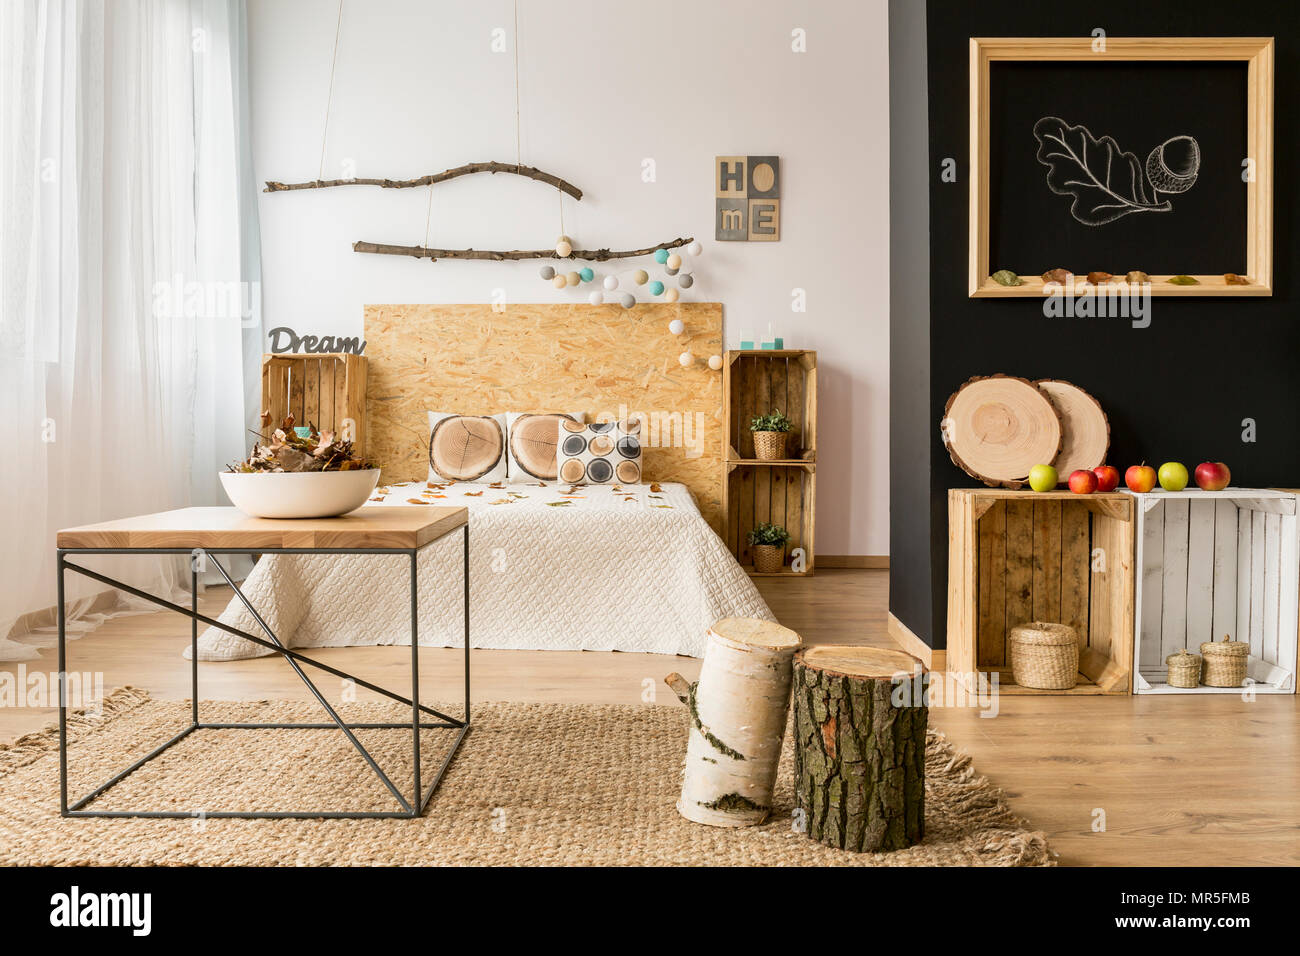 Light And Spacious Bedroom With Black And White Wall And Eco Diy Wooden Furniture Stock Photo Alamy